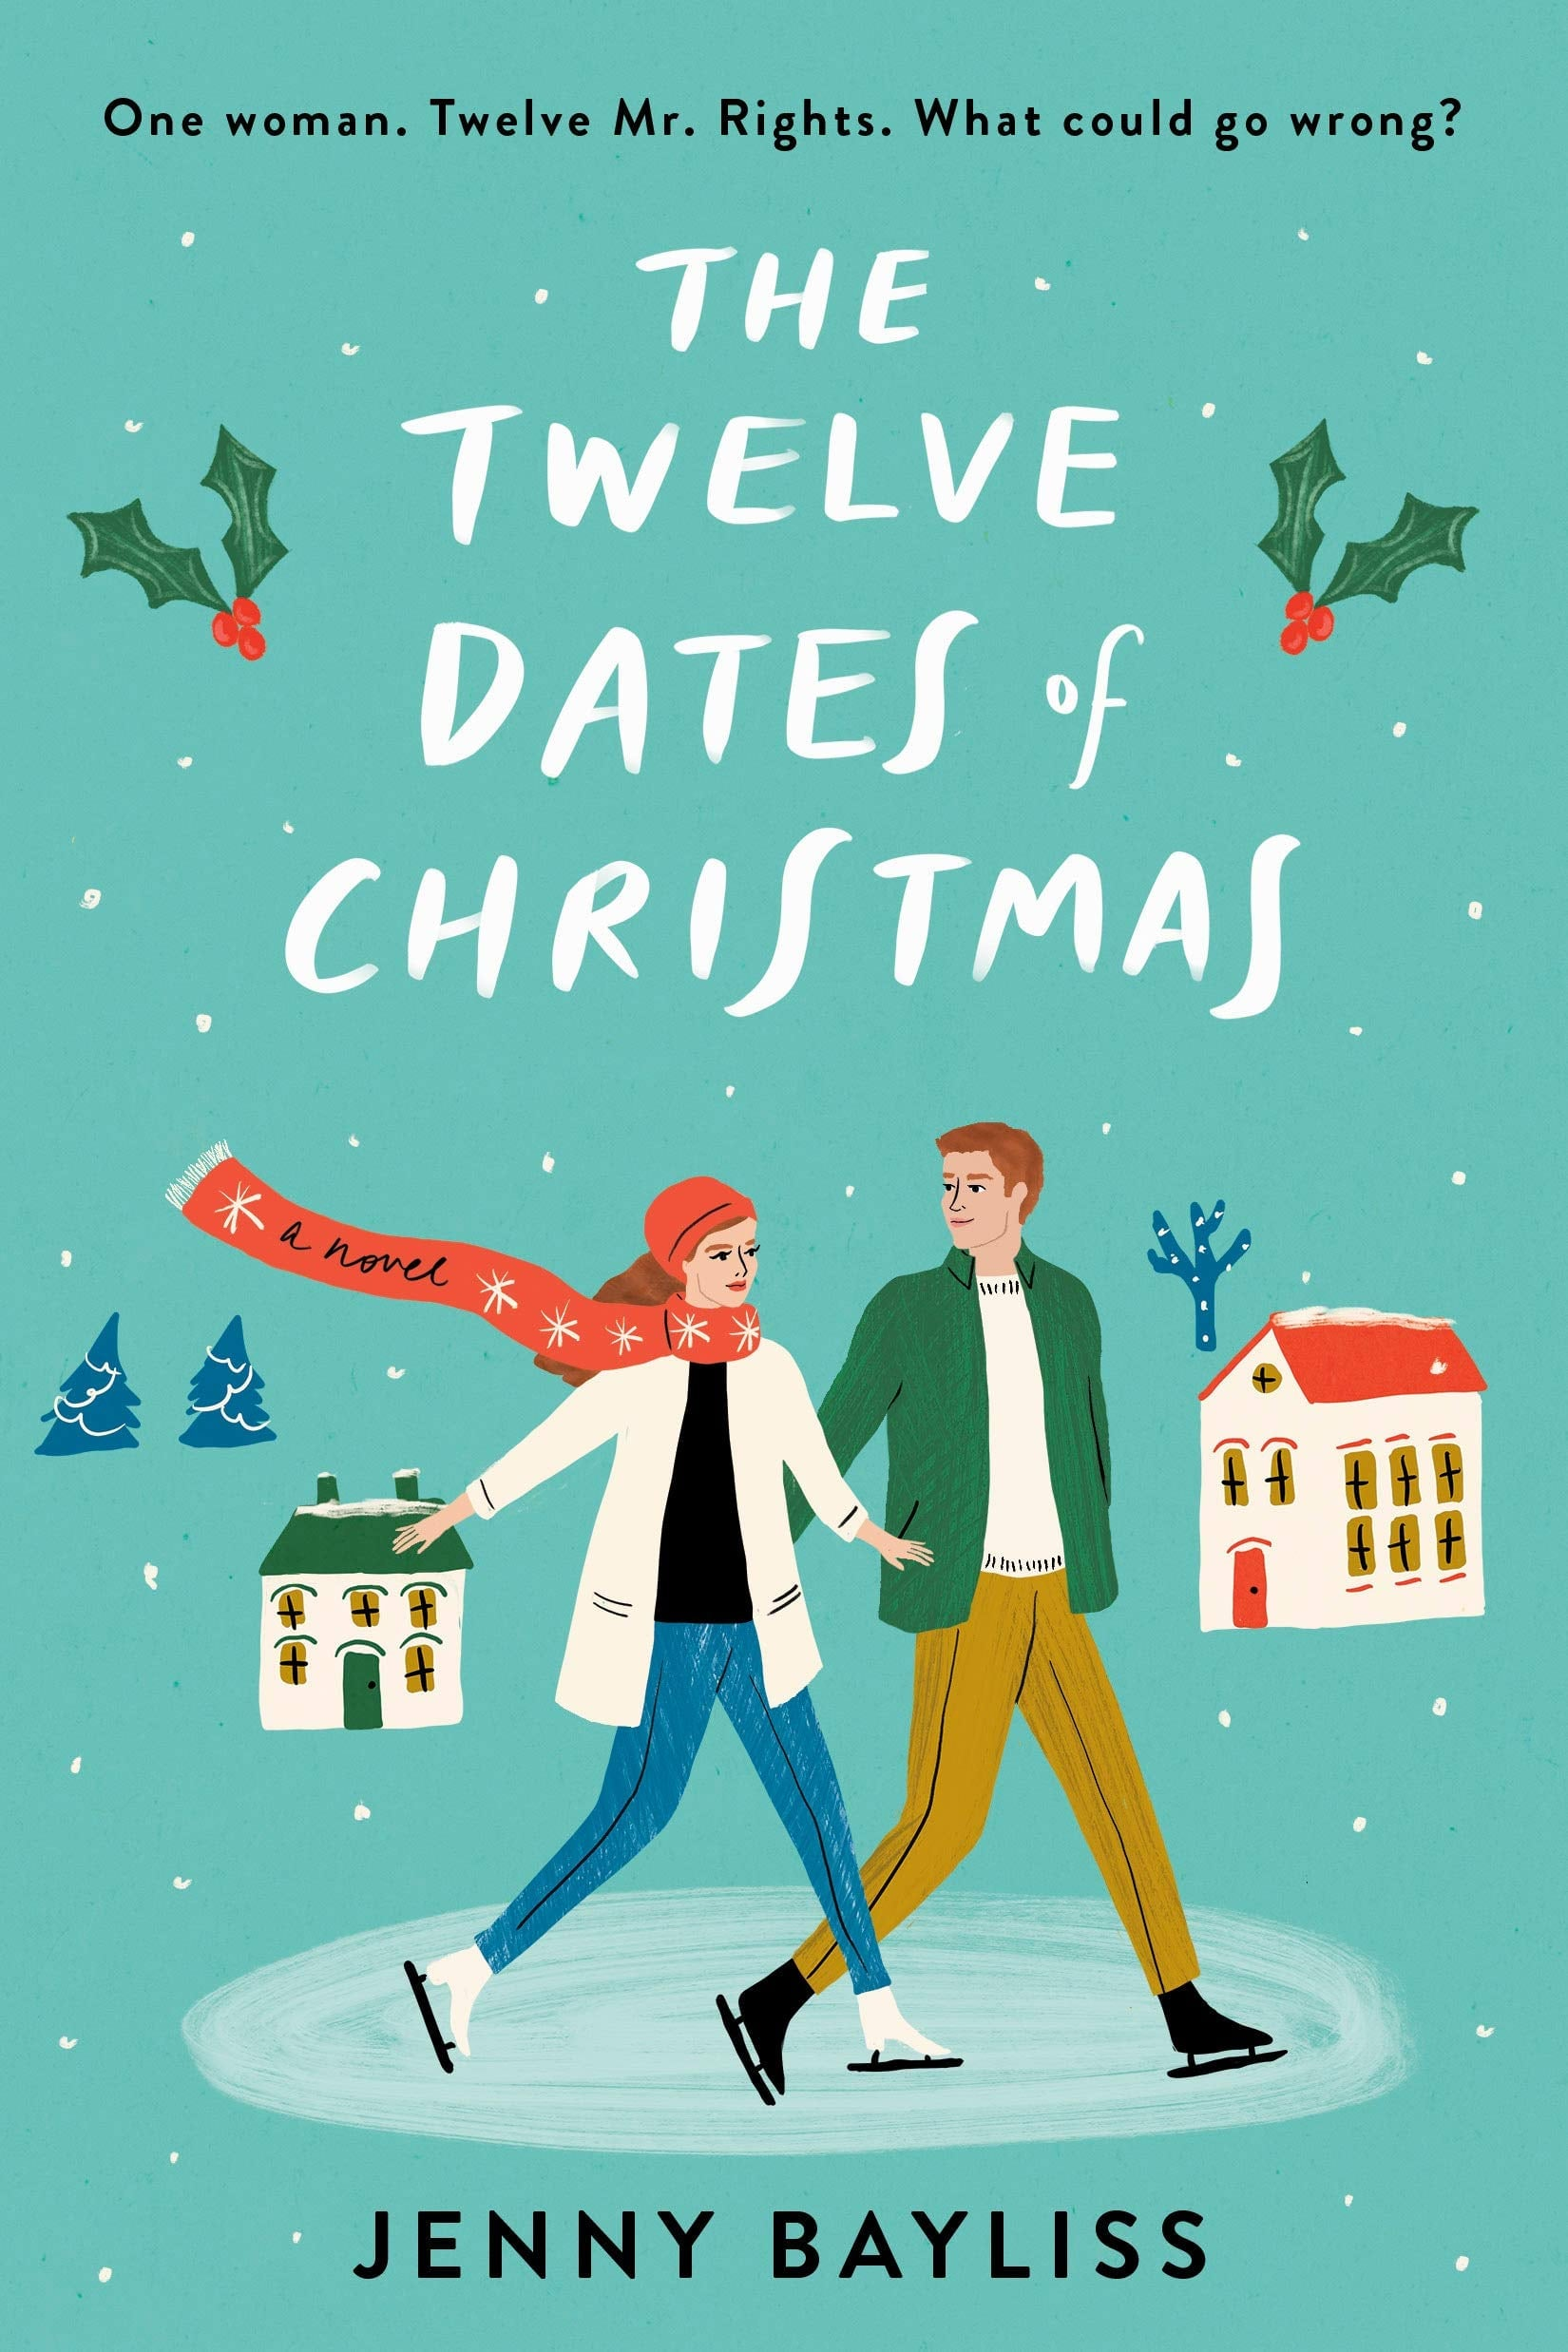 Christmas Novels 2020 New Holiday Romance Books to Read in 2020 | POPSUGAR Entertainment